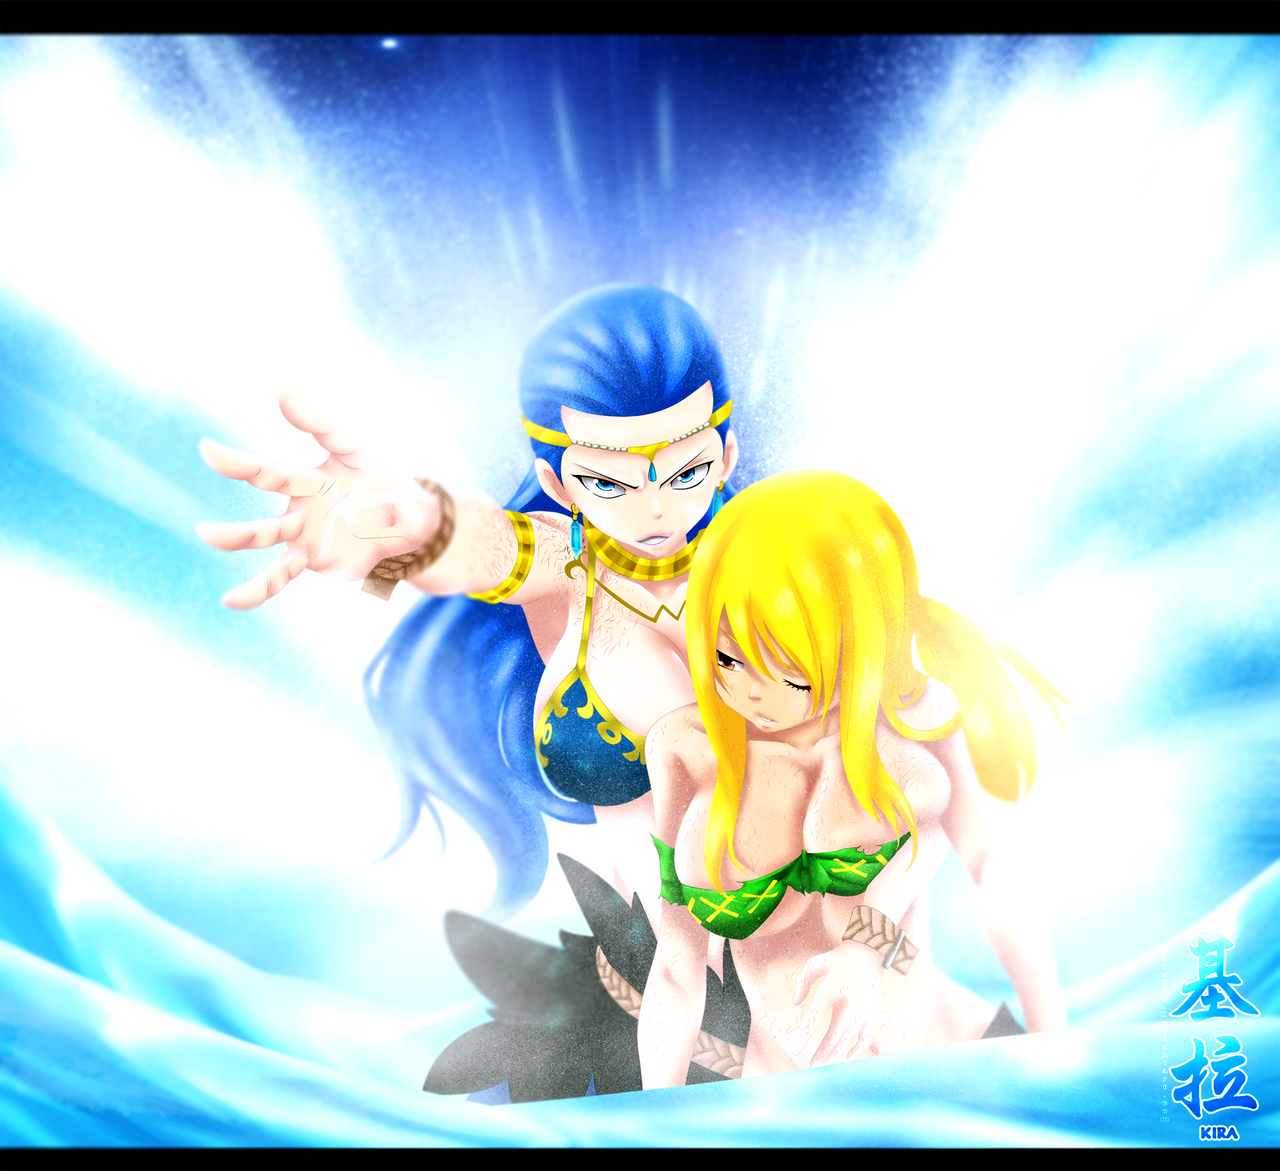 Lucy Heartfilia And Aquarius Color By Kira015 On DeviantArt